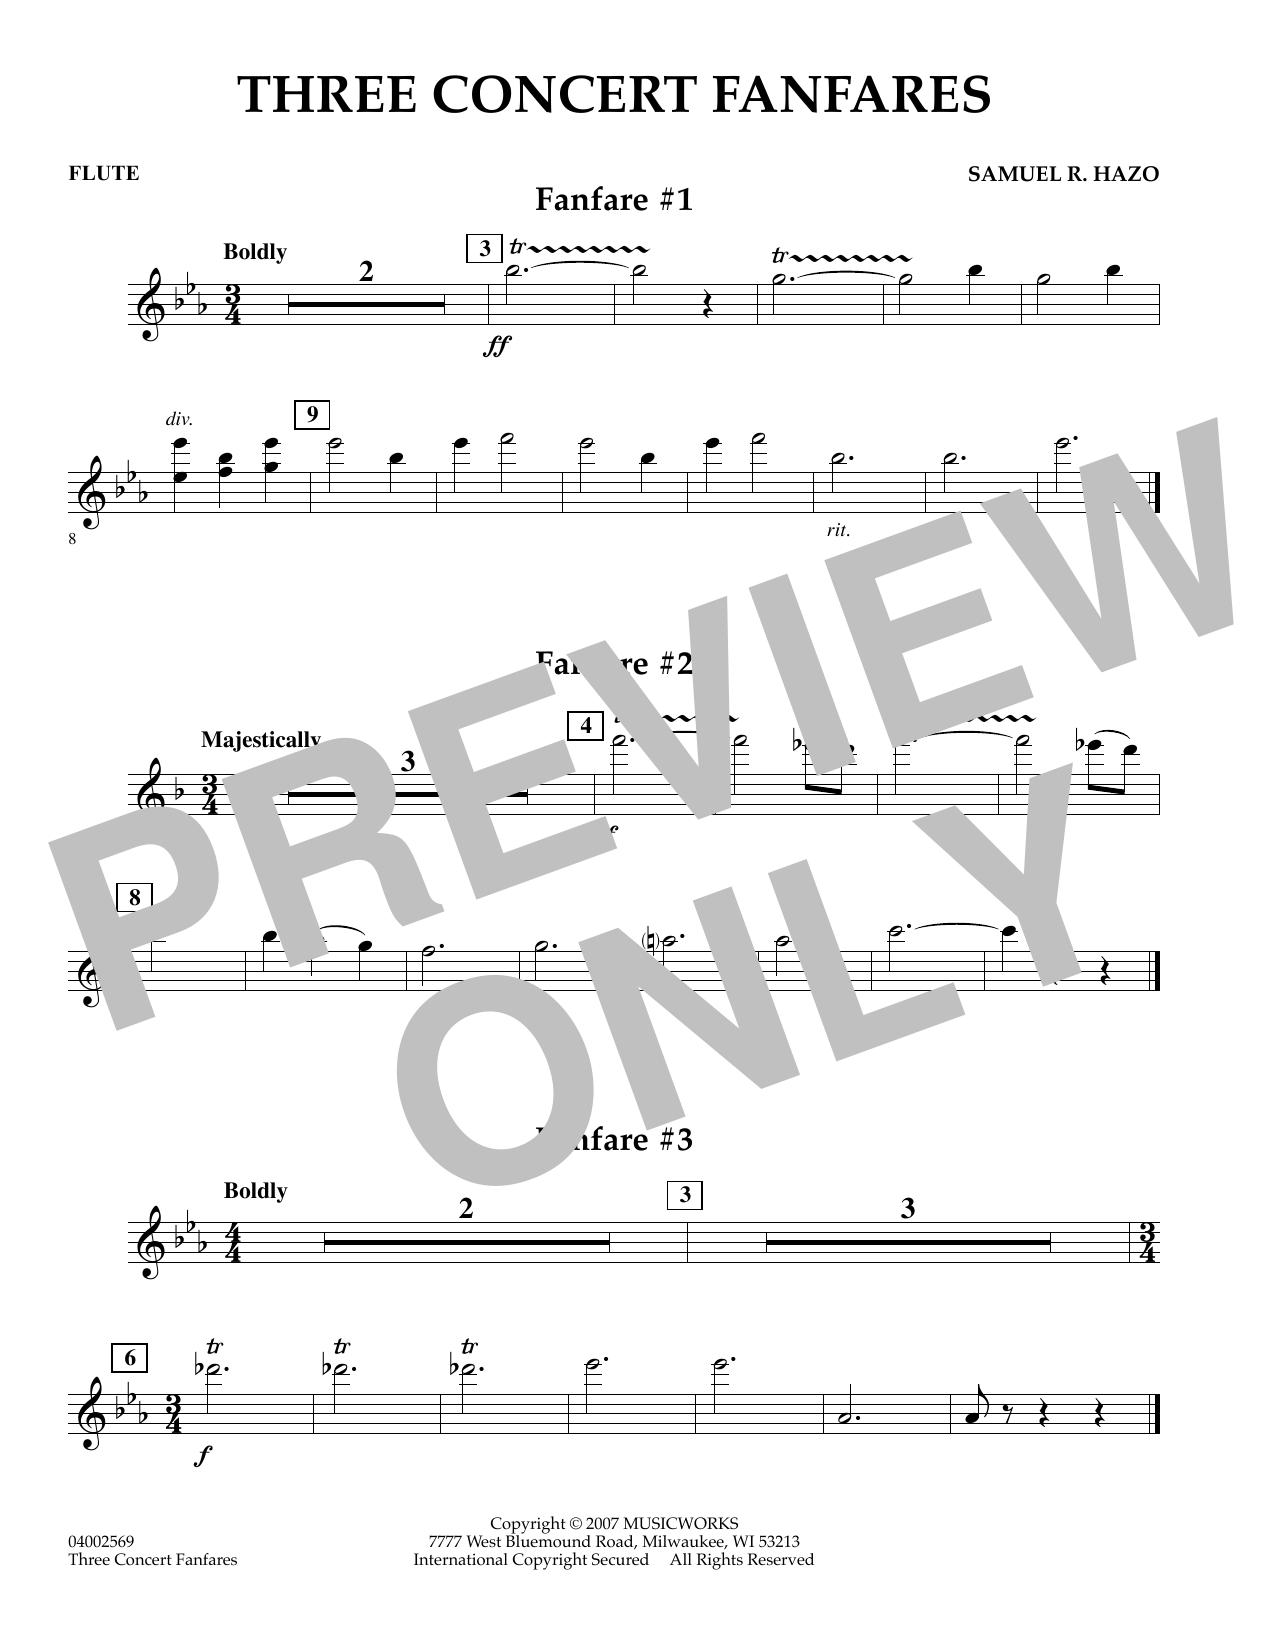 Samuel R. Hazo Three Concert Fanfares - Flute sheet music preview music notes and score for Concert Band including 1 page(s)